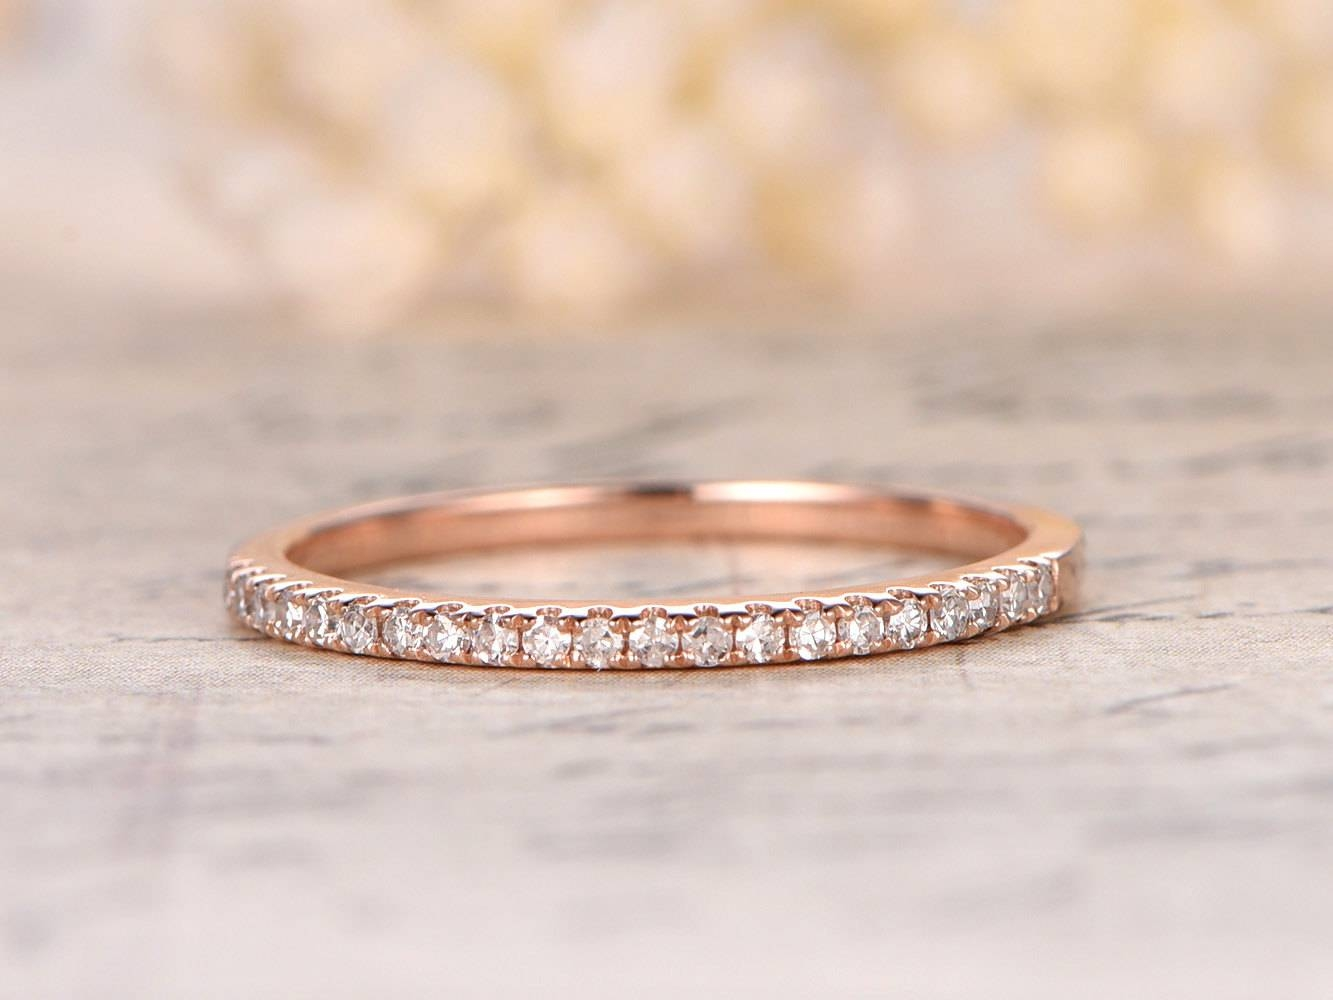 Valentine's Day Present 14K Rose Gold Wedding Band Half In Micro Pave Wedding Bands (View 14 of 15)